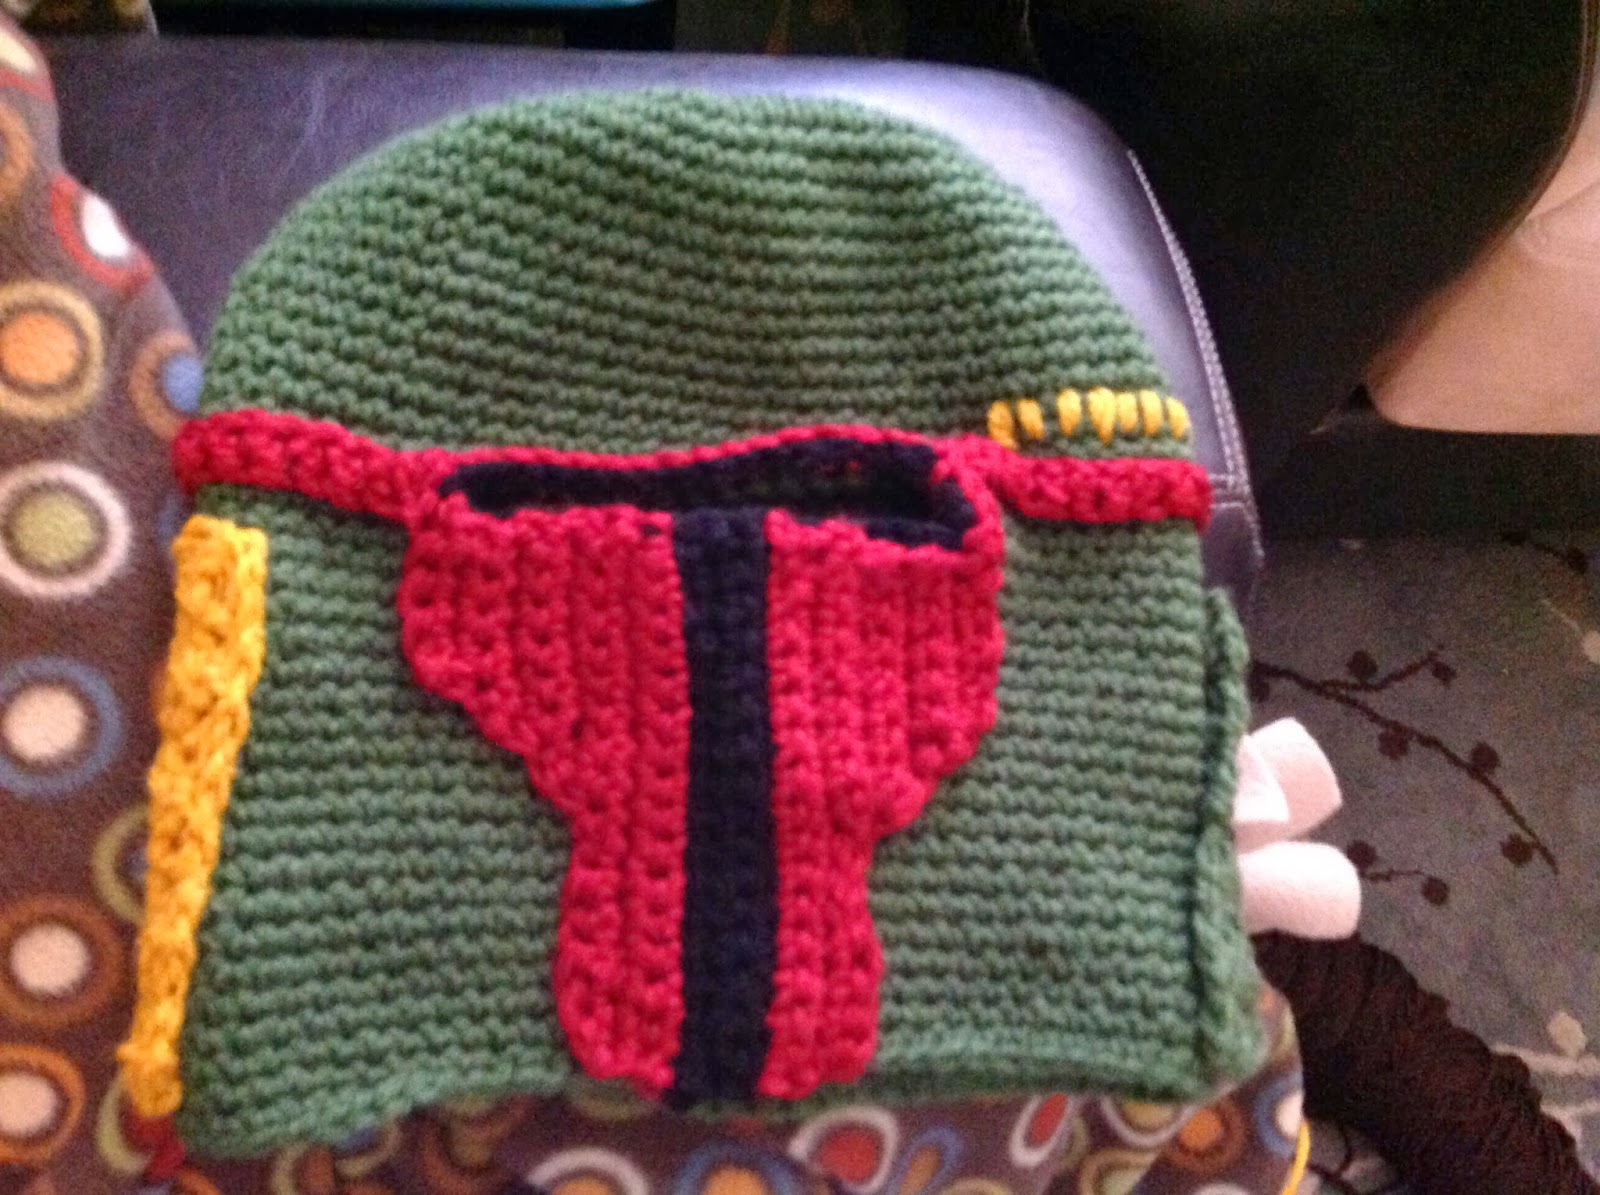 Free Star Wars Crochet Patterns - Crafty Tutorials